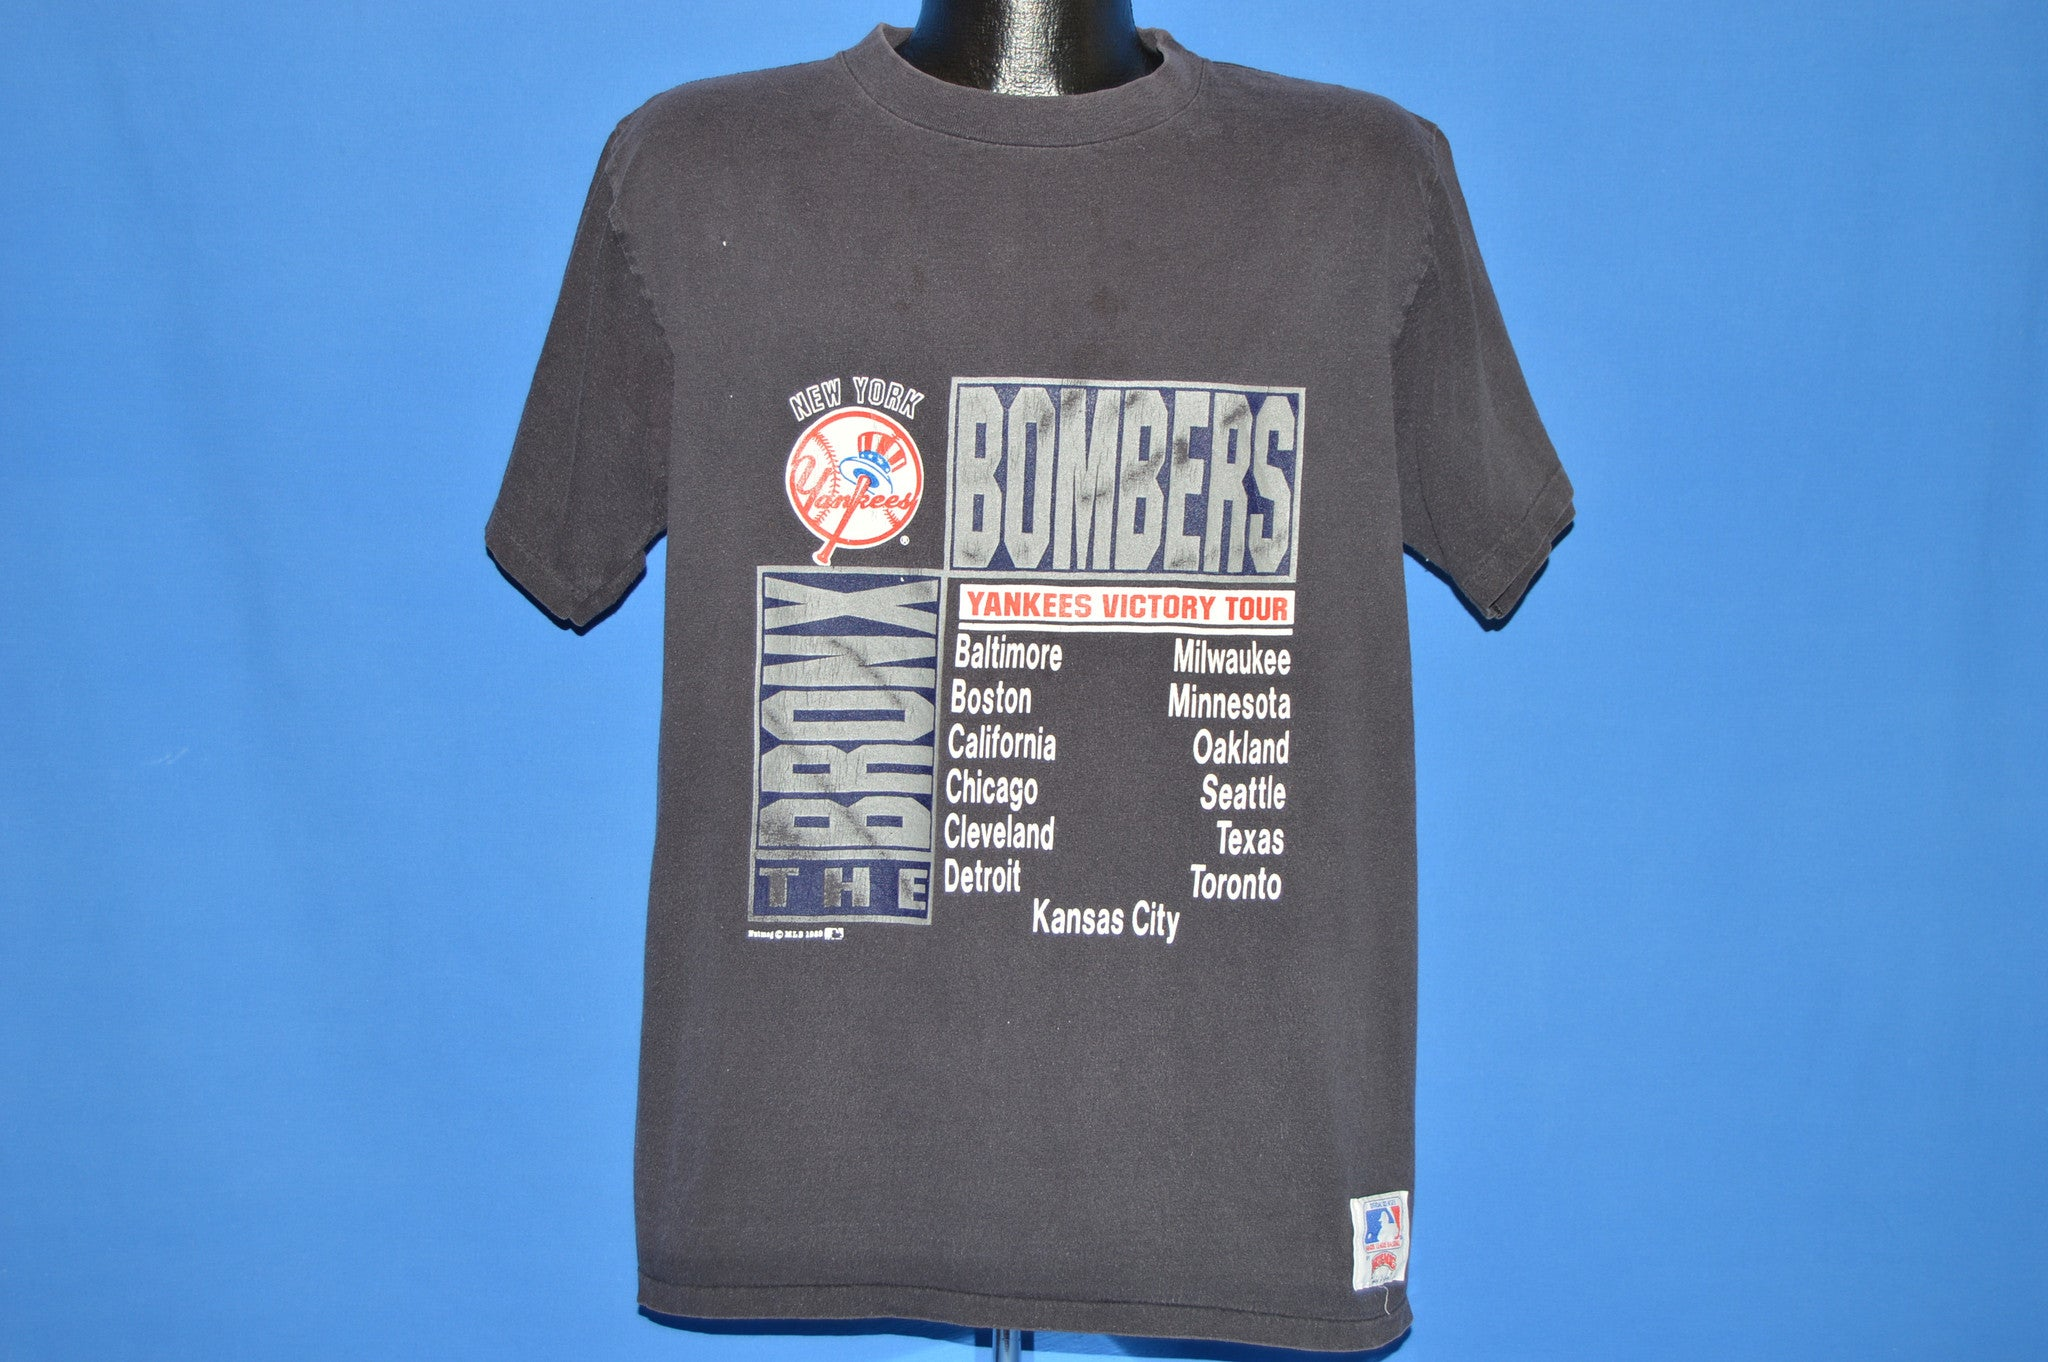 90s New York Yankees Bronx Bombers t-shirt Large - The Captains Vintage 4f9104bd2be